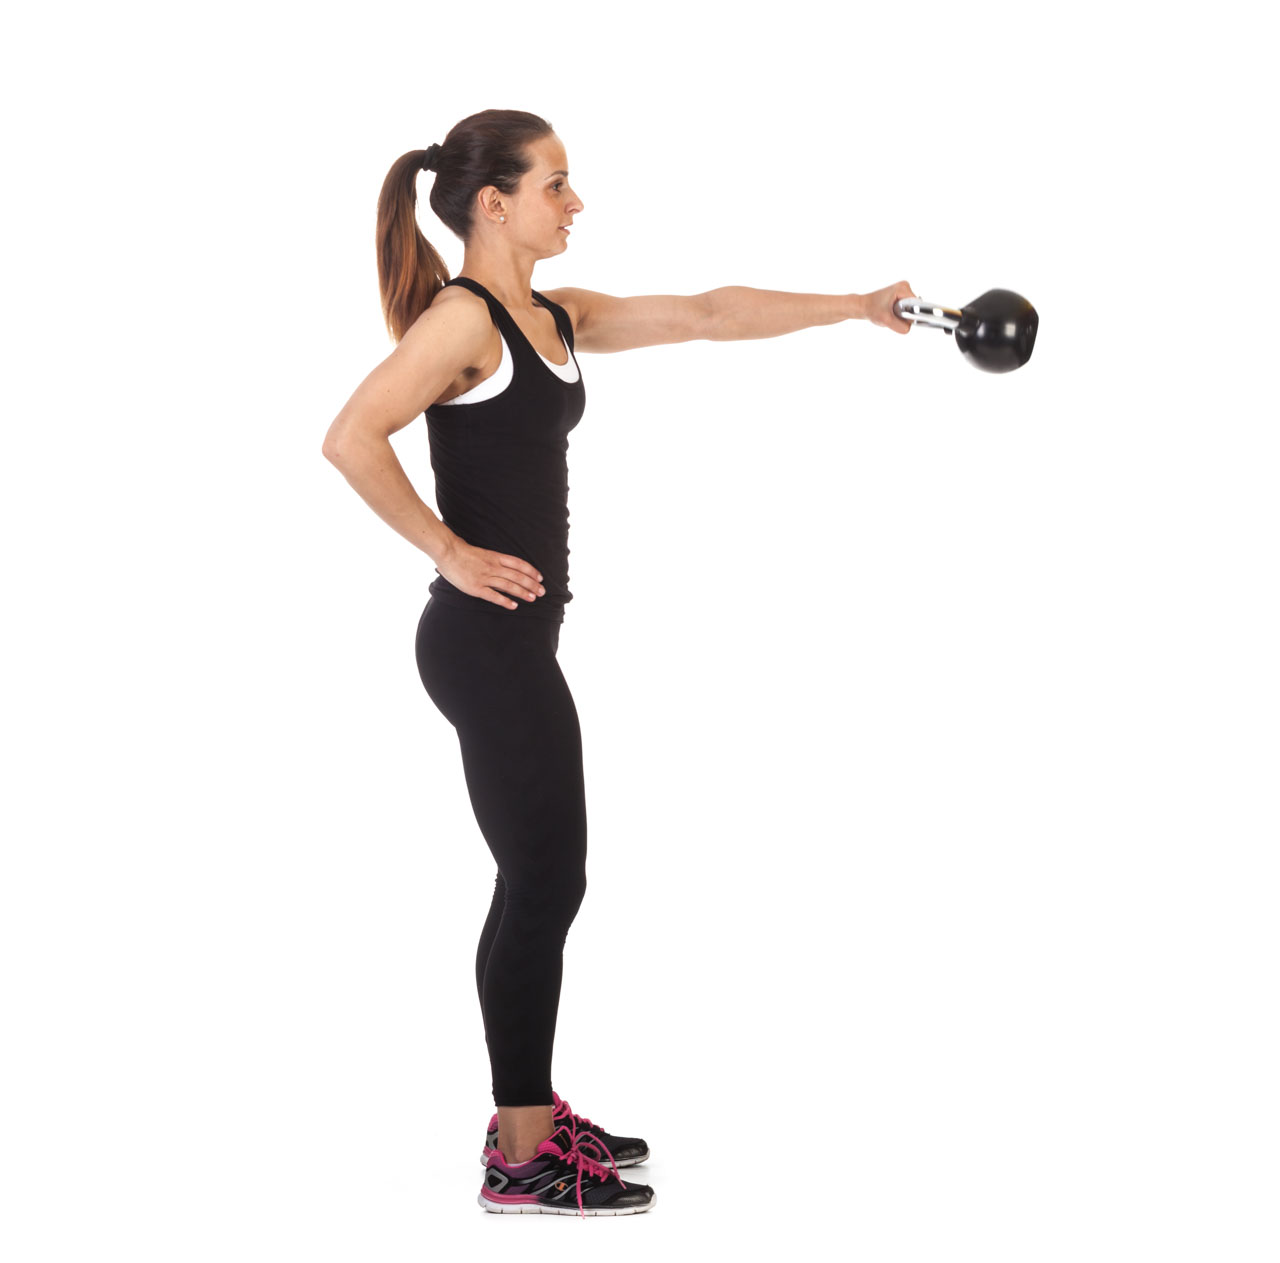 One-Arm Kettlebell Snatch frame #2